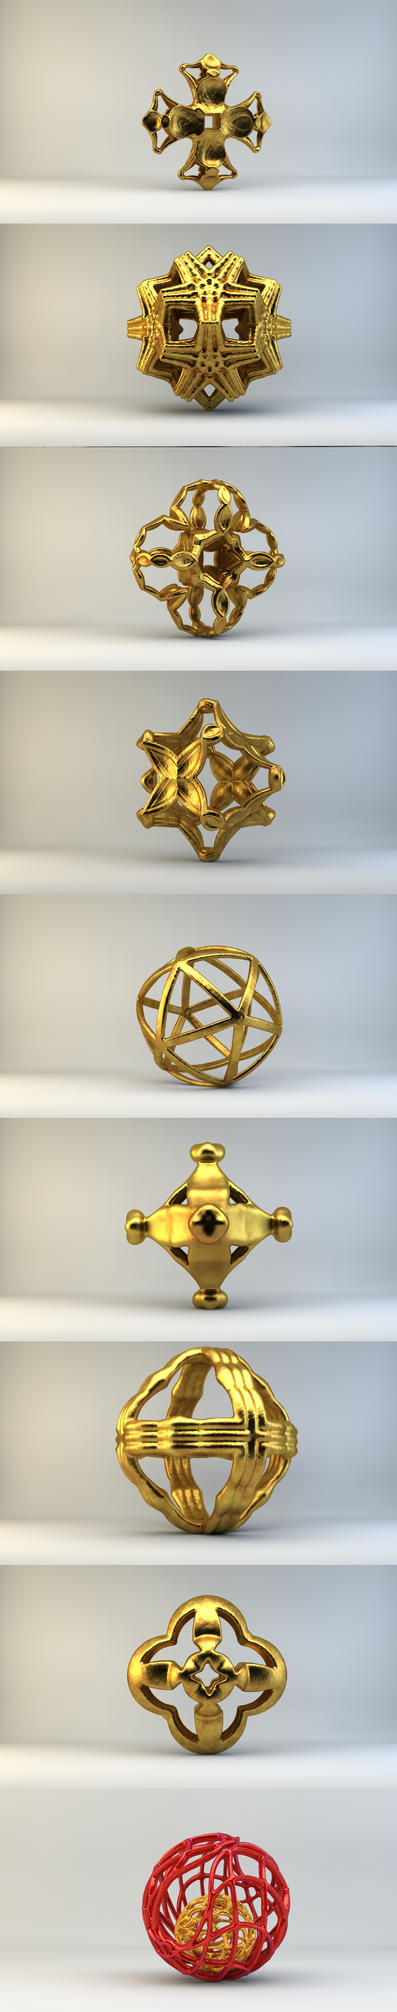 My MB3D's Shapeways by nic022